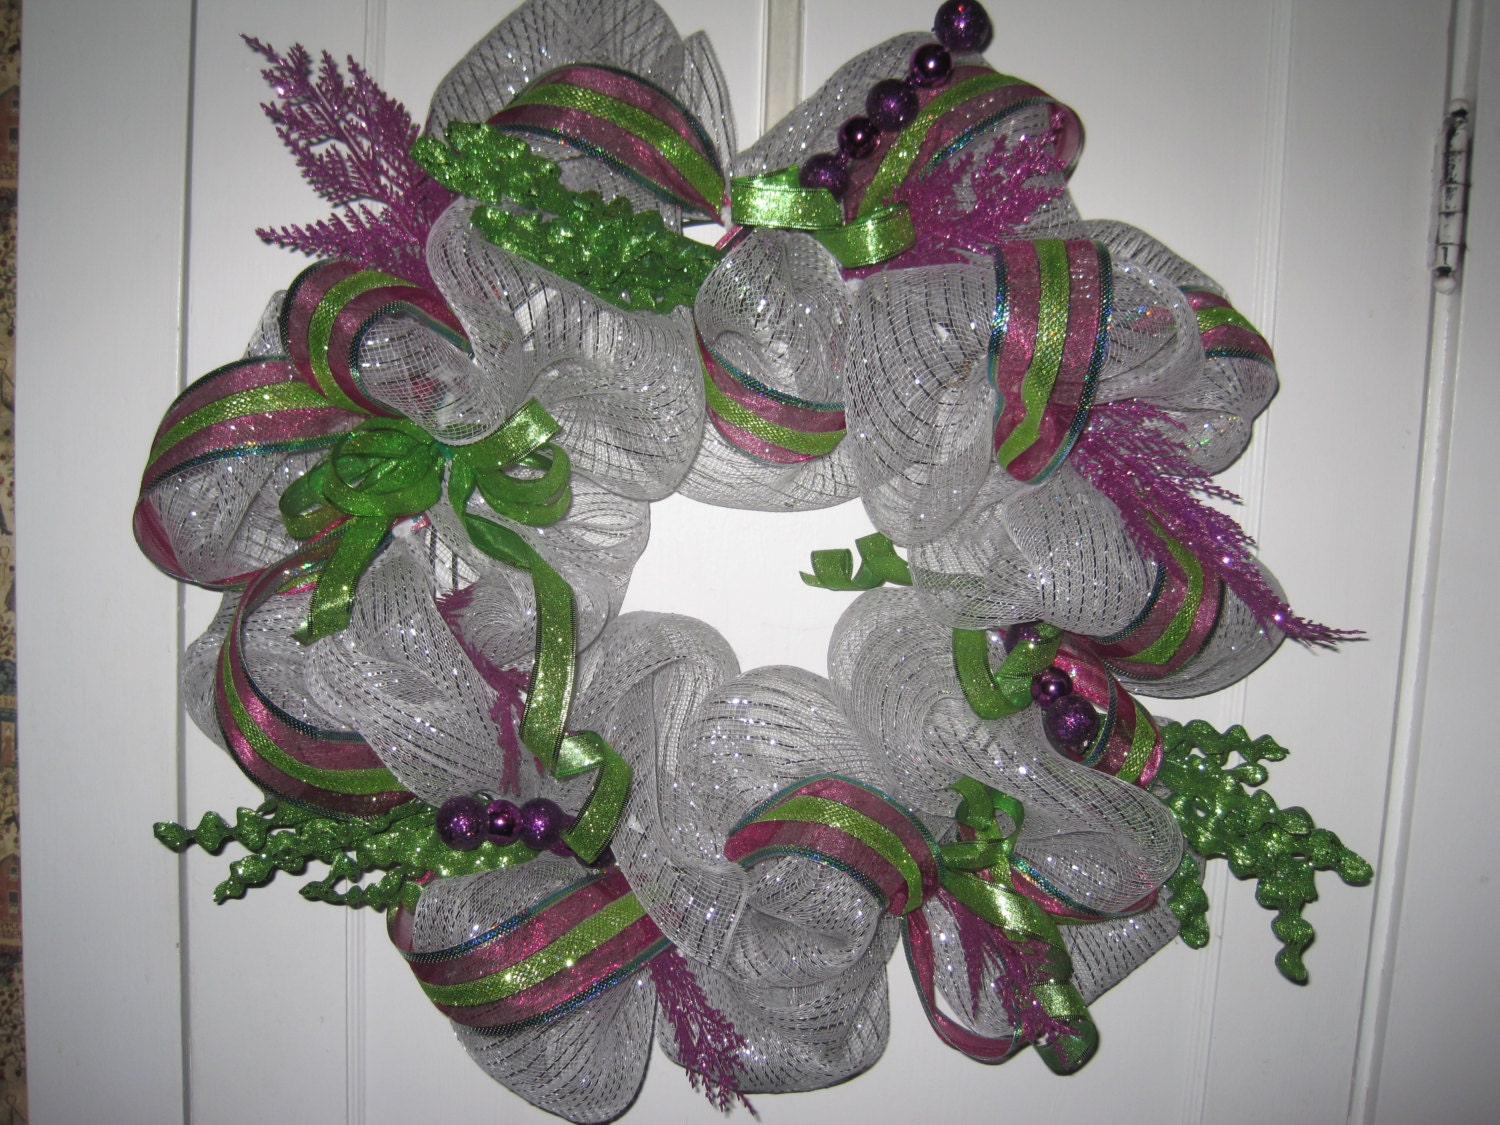 Silver theme deco mesh wreath 26""